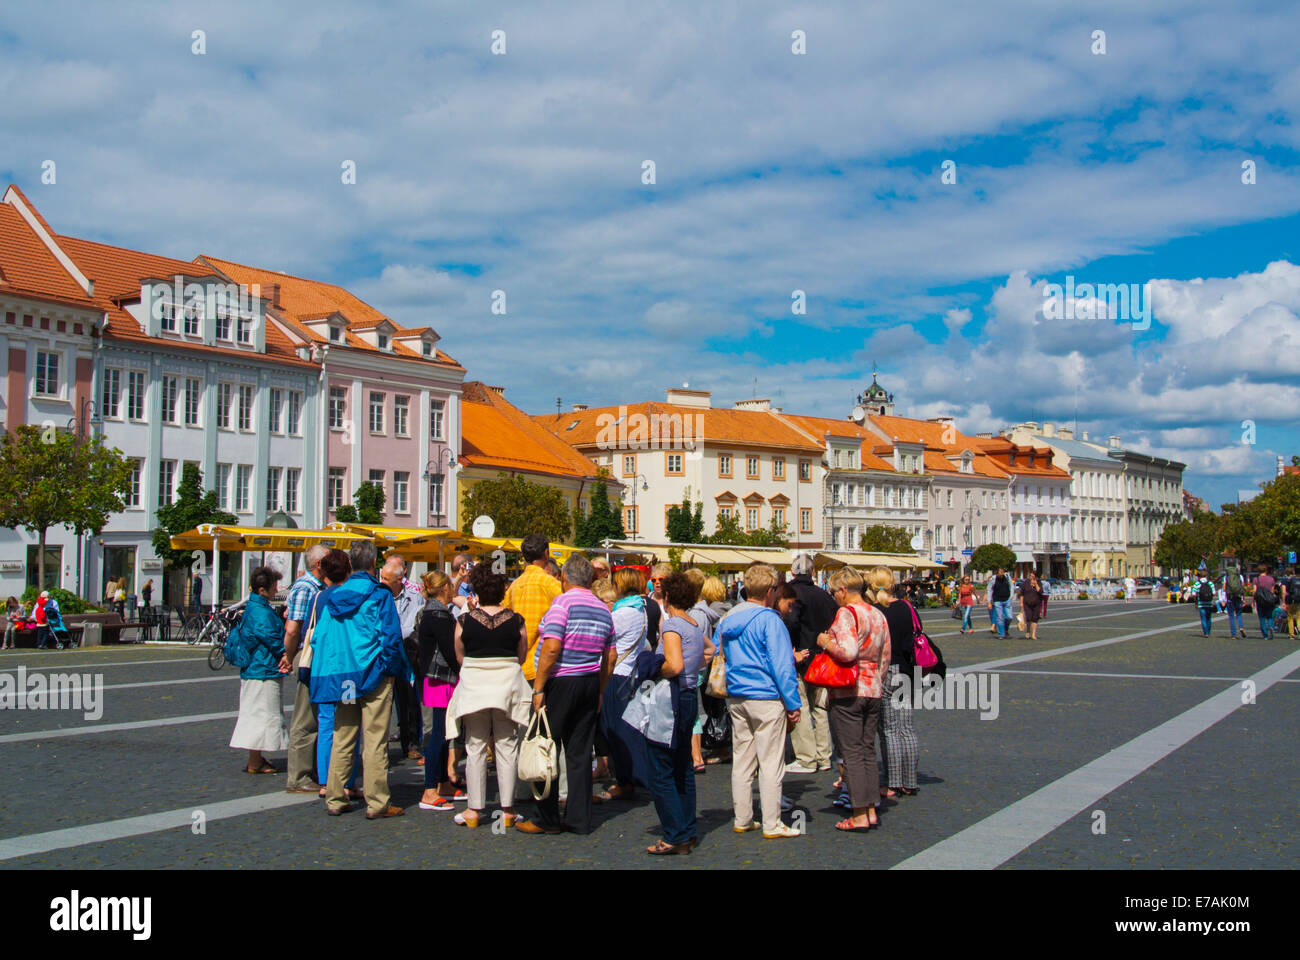 Guided tourist group, main square, old town, Vilnius, Lithuania, Europe - Stock Image